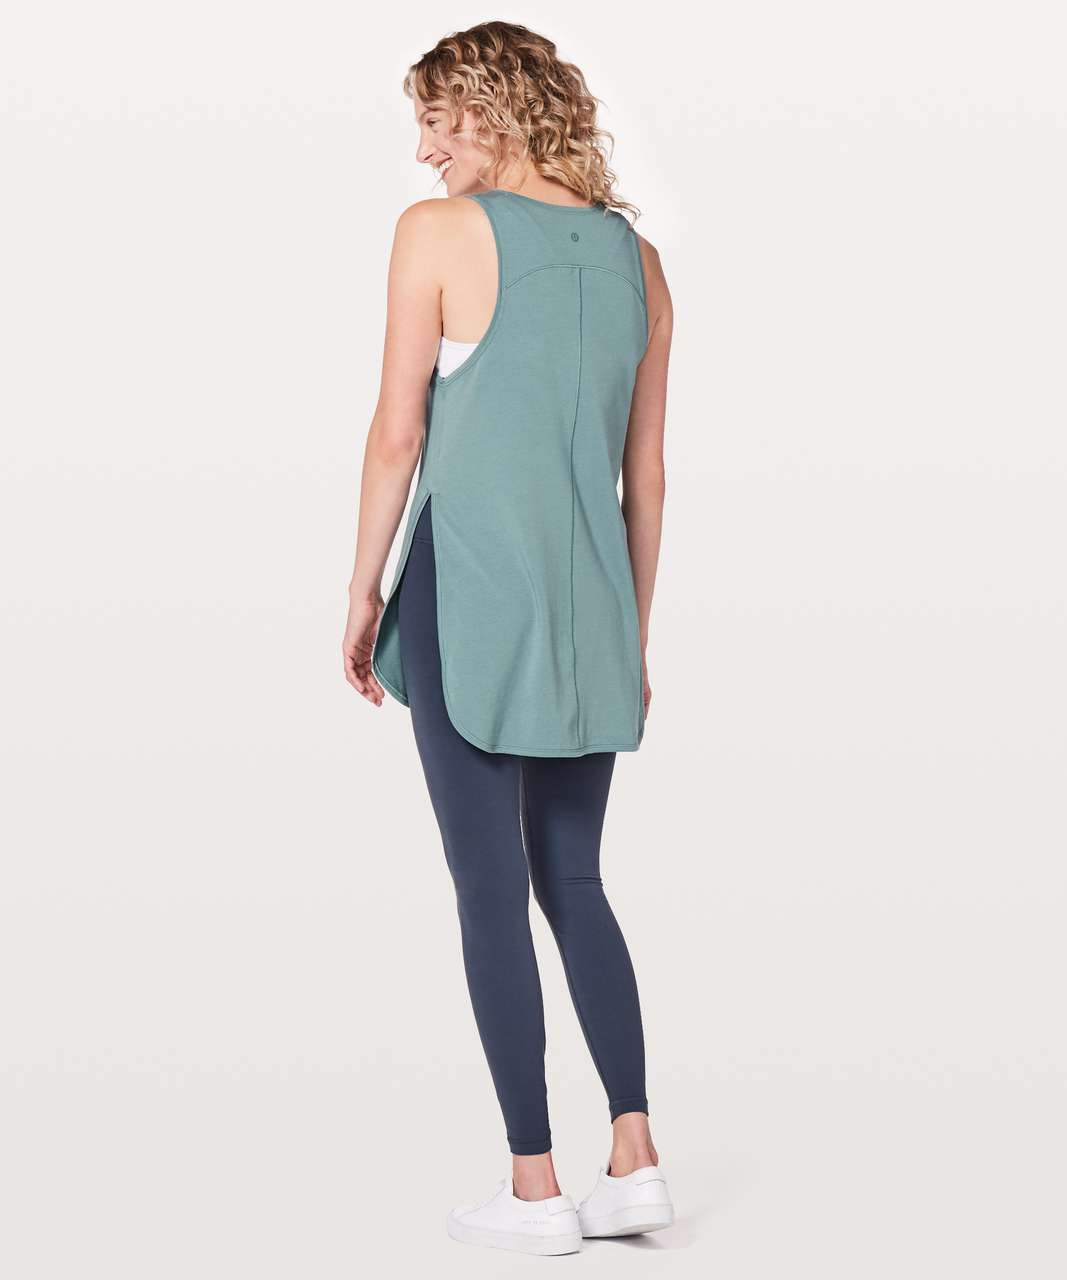 Lululemon Side Story Tank - Mystic Green